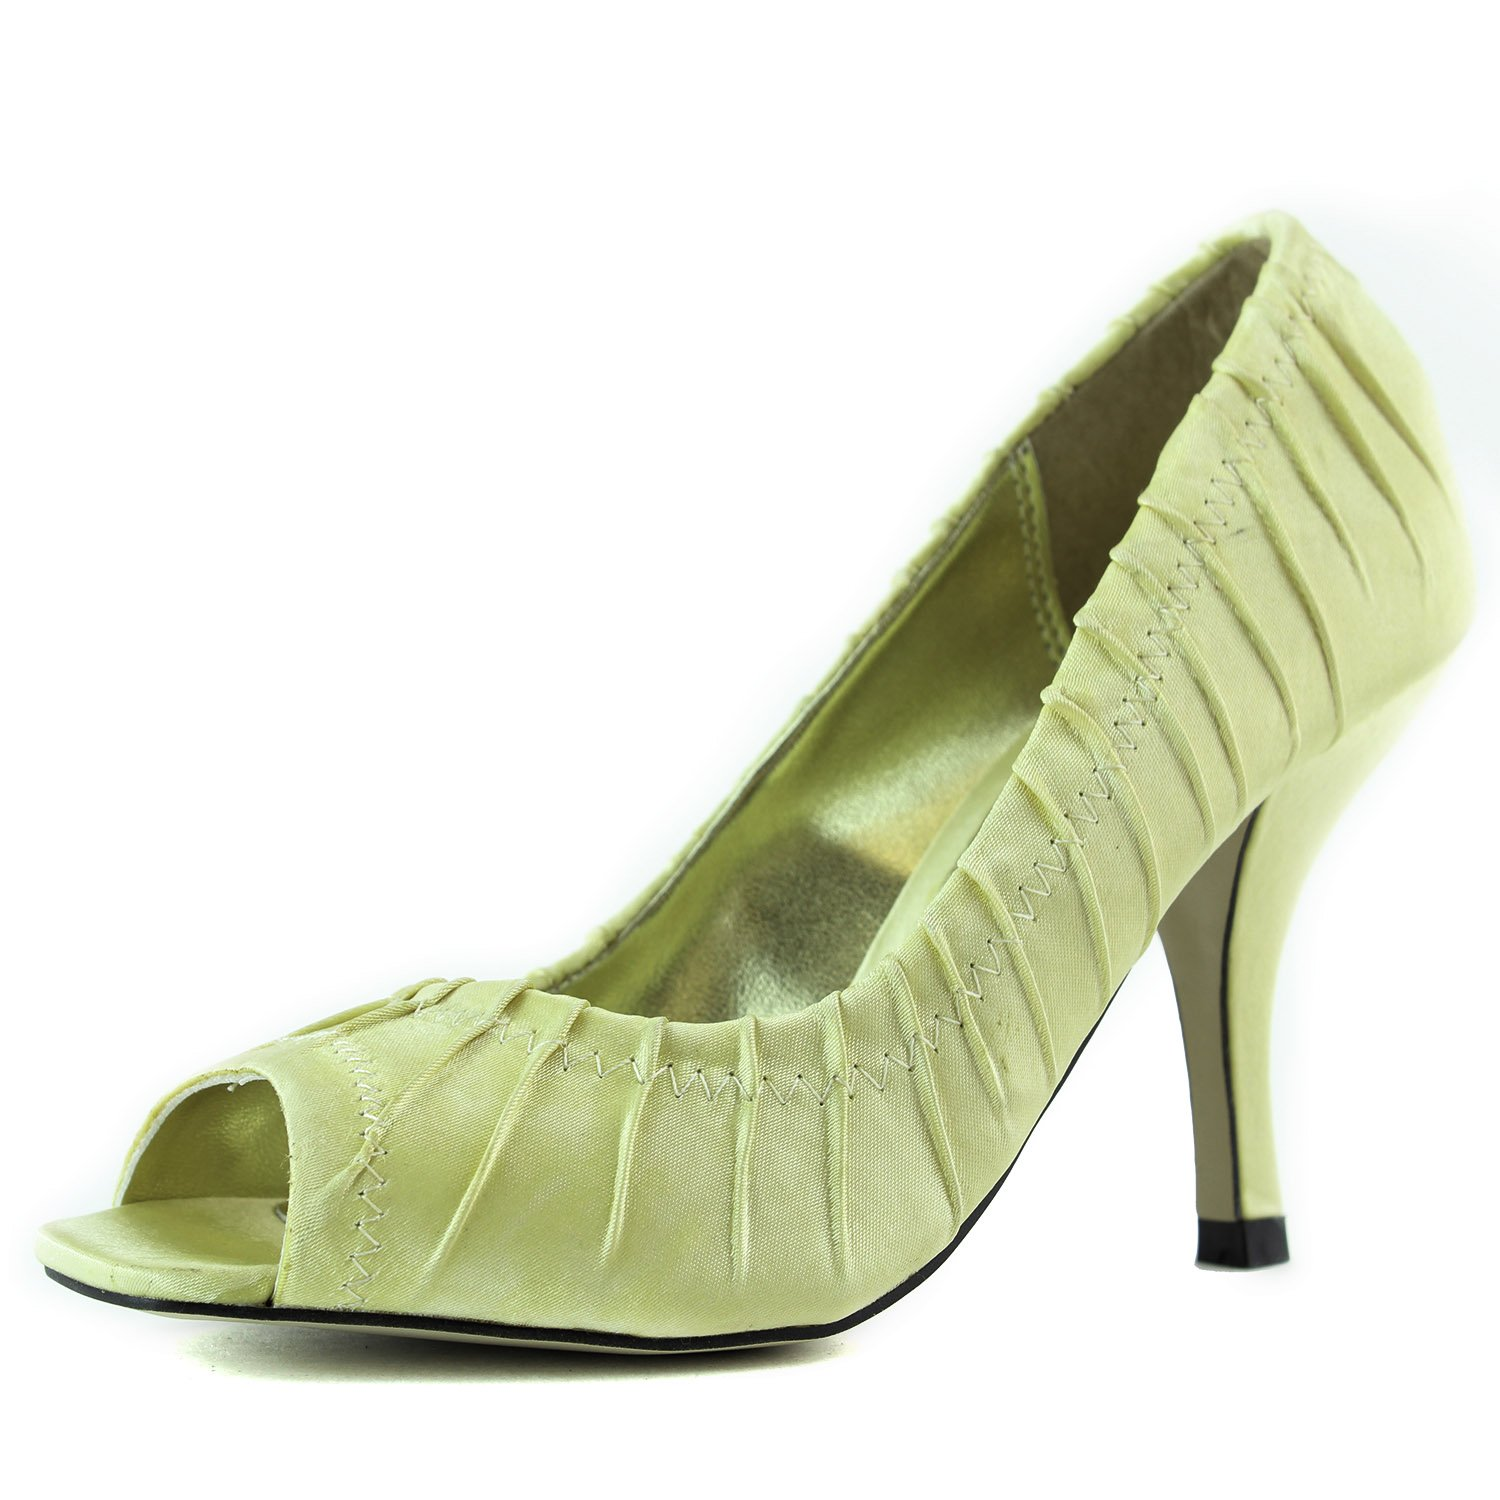 Women's Karolyn Rocky-3 Satin Peep Toe Pumps Fashion Shoes